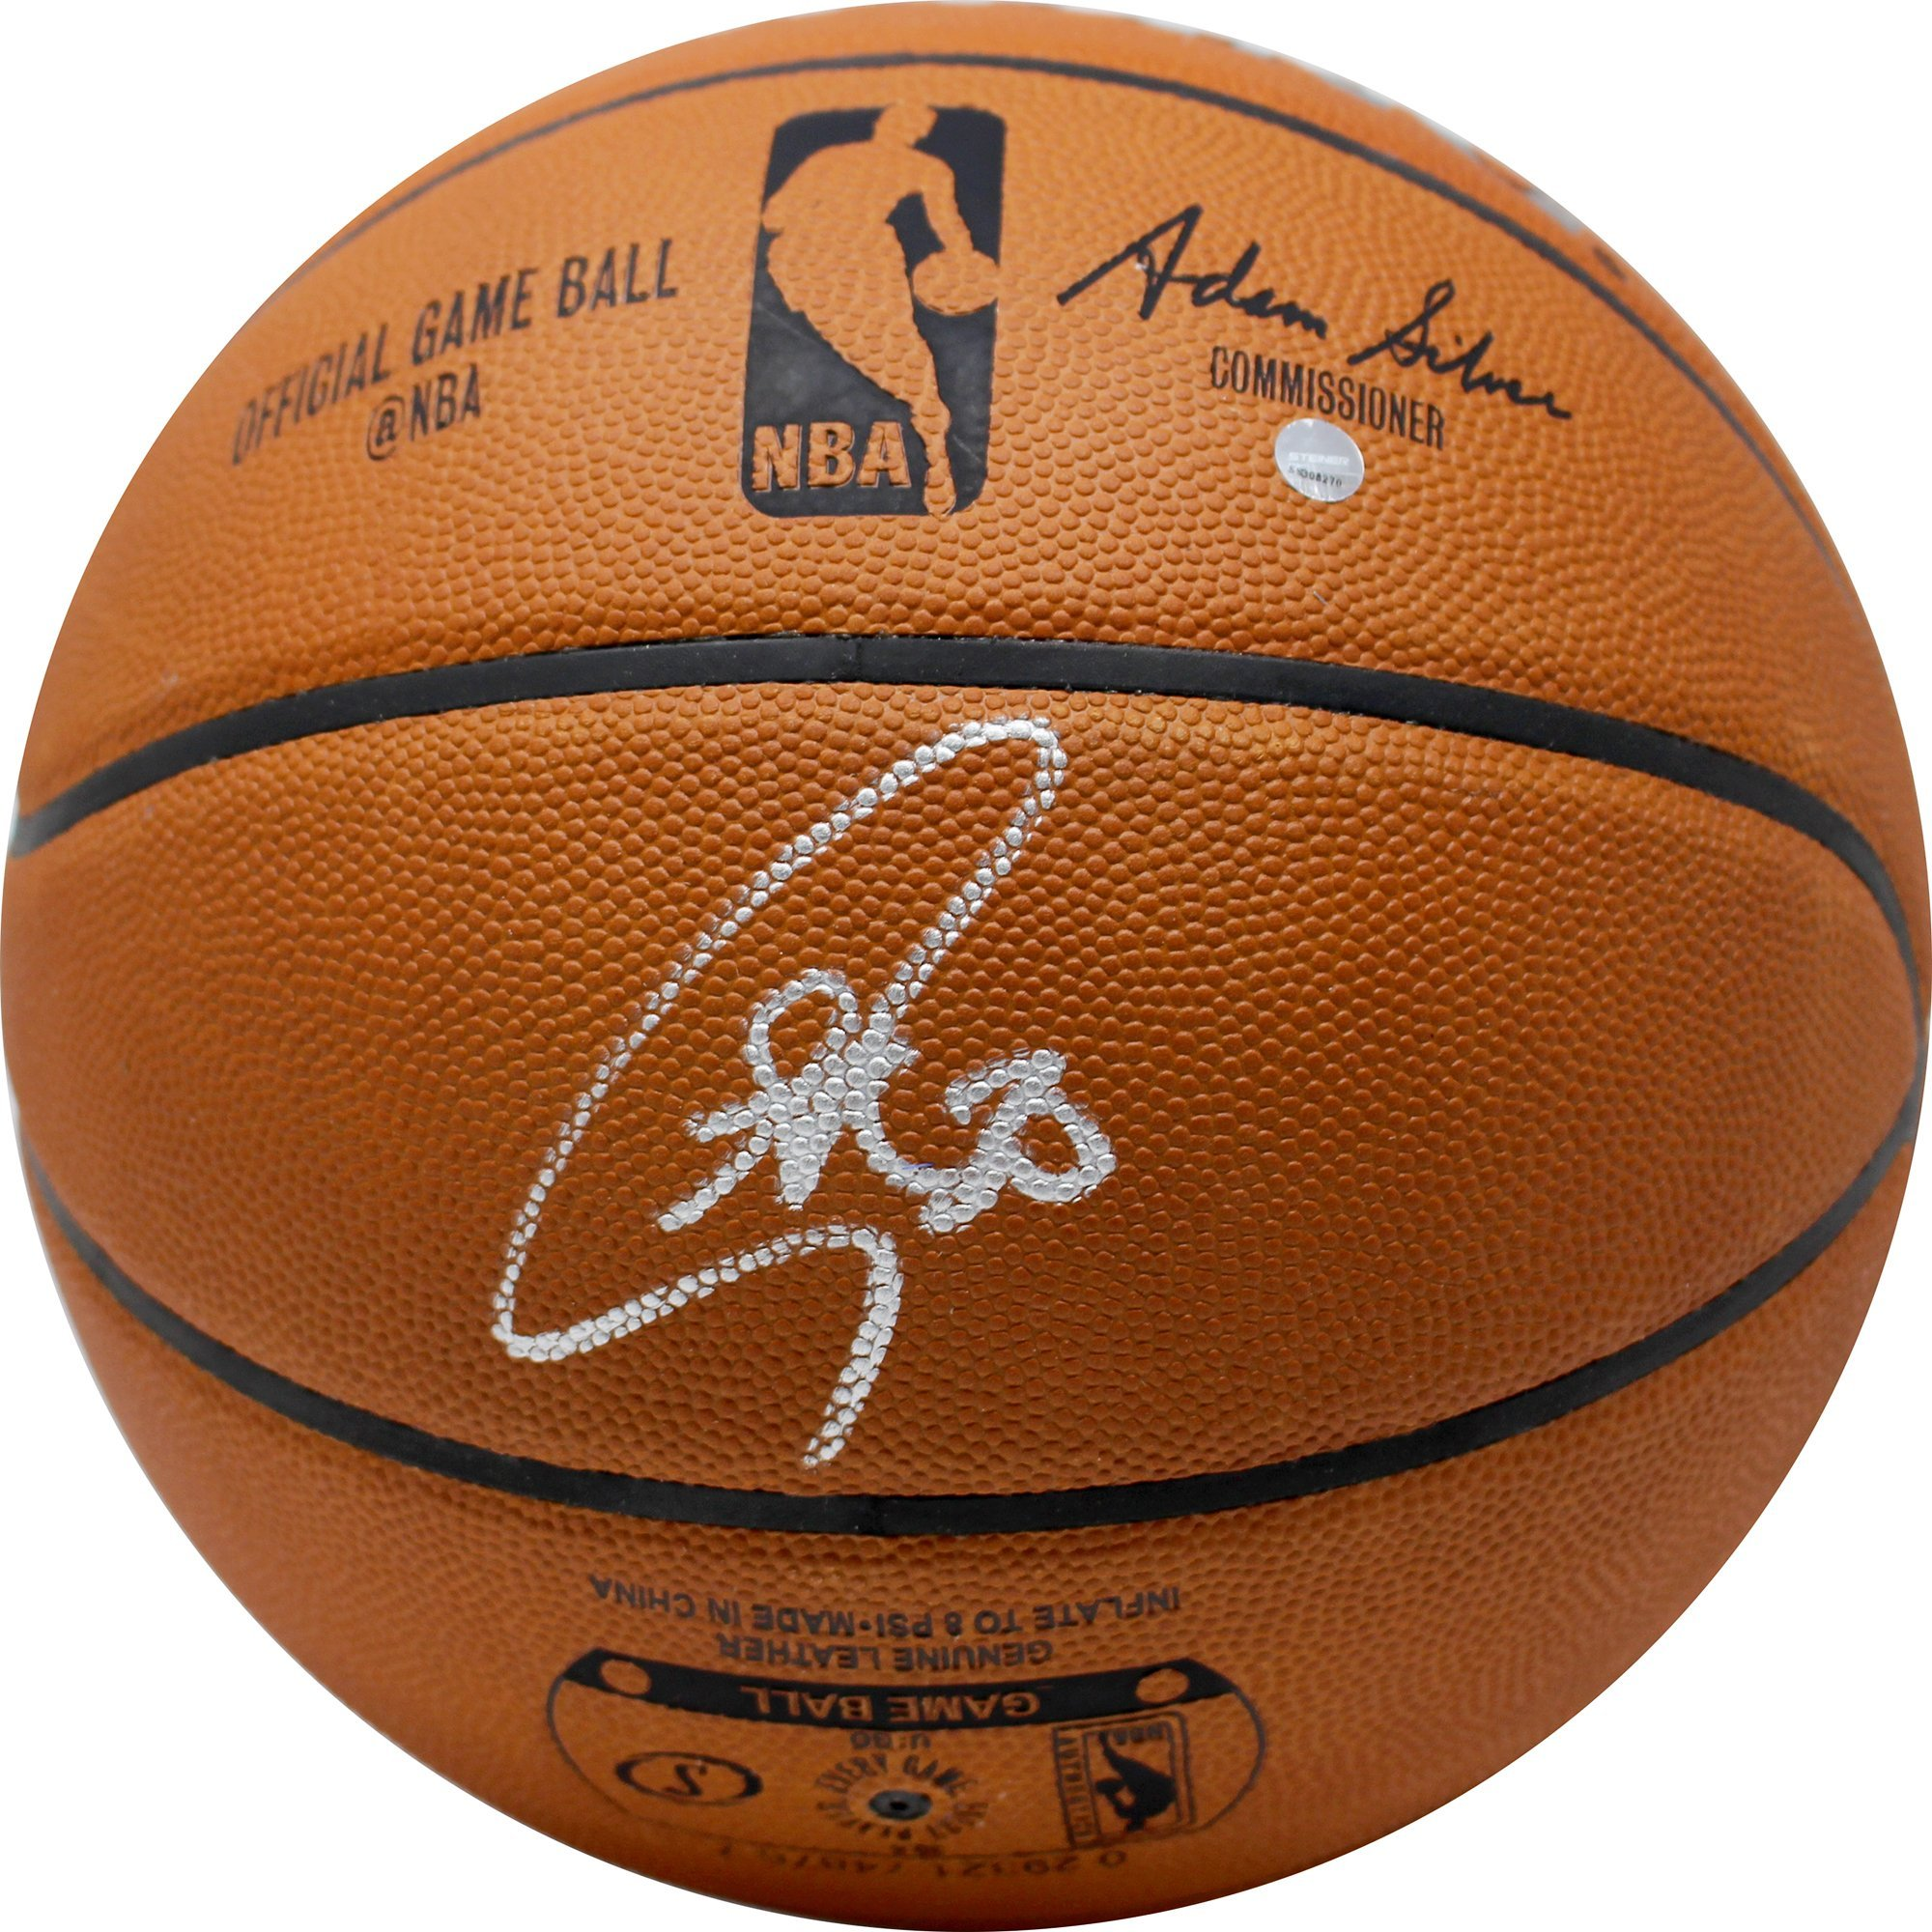 Authentic Spalding NBA Basketball (autographs will vary)